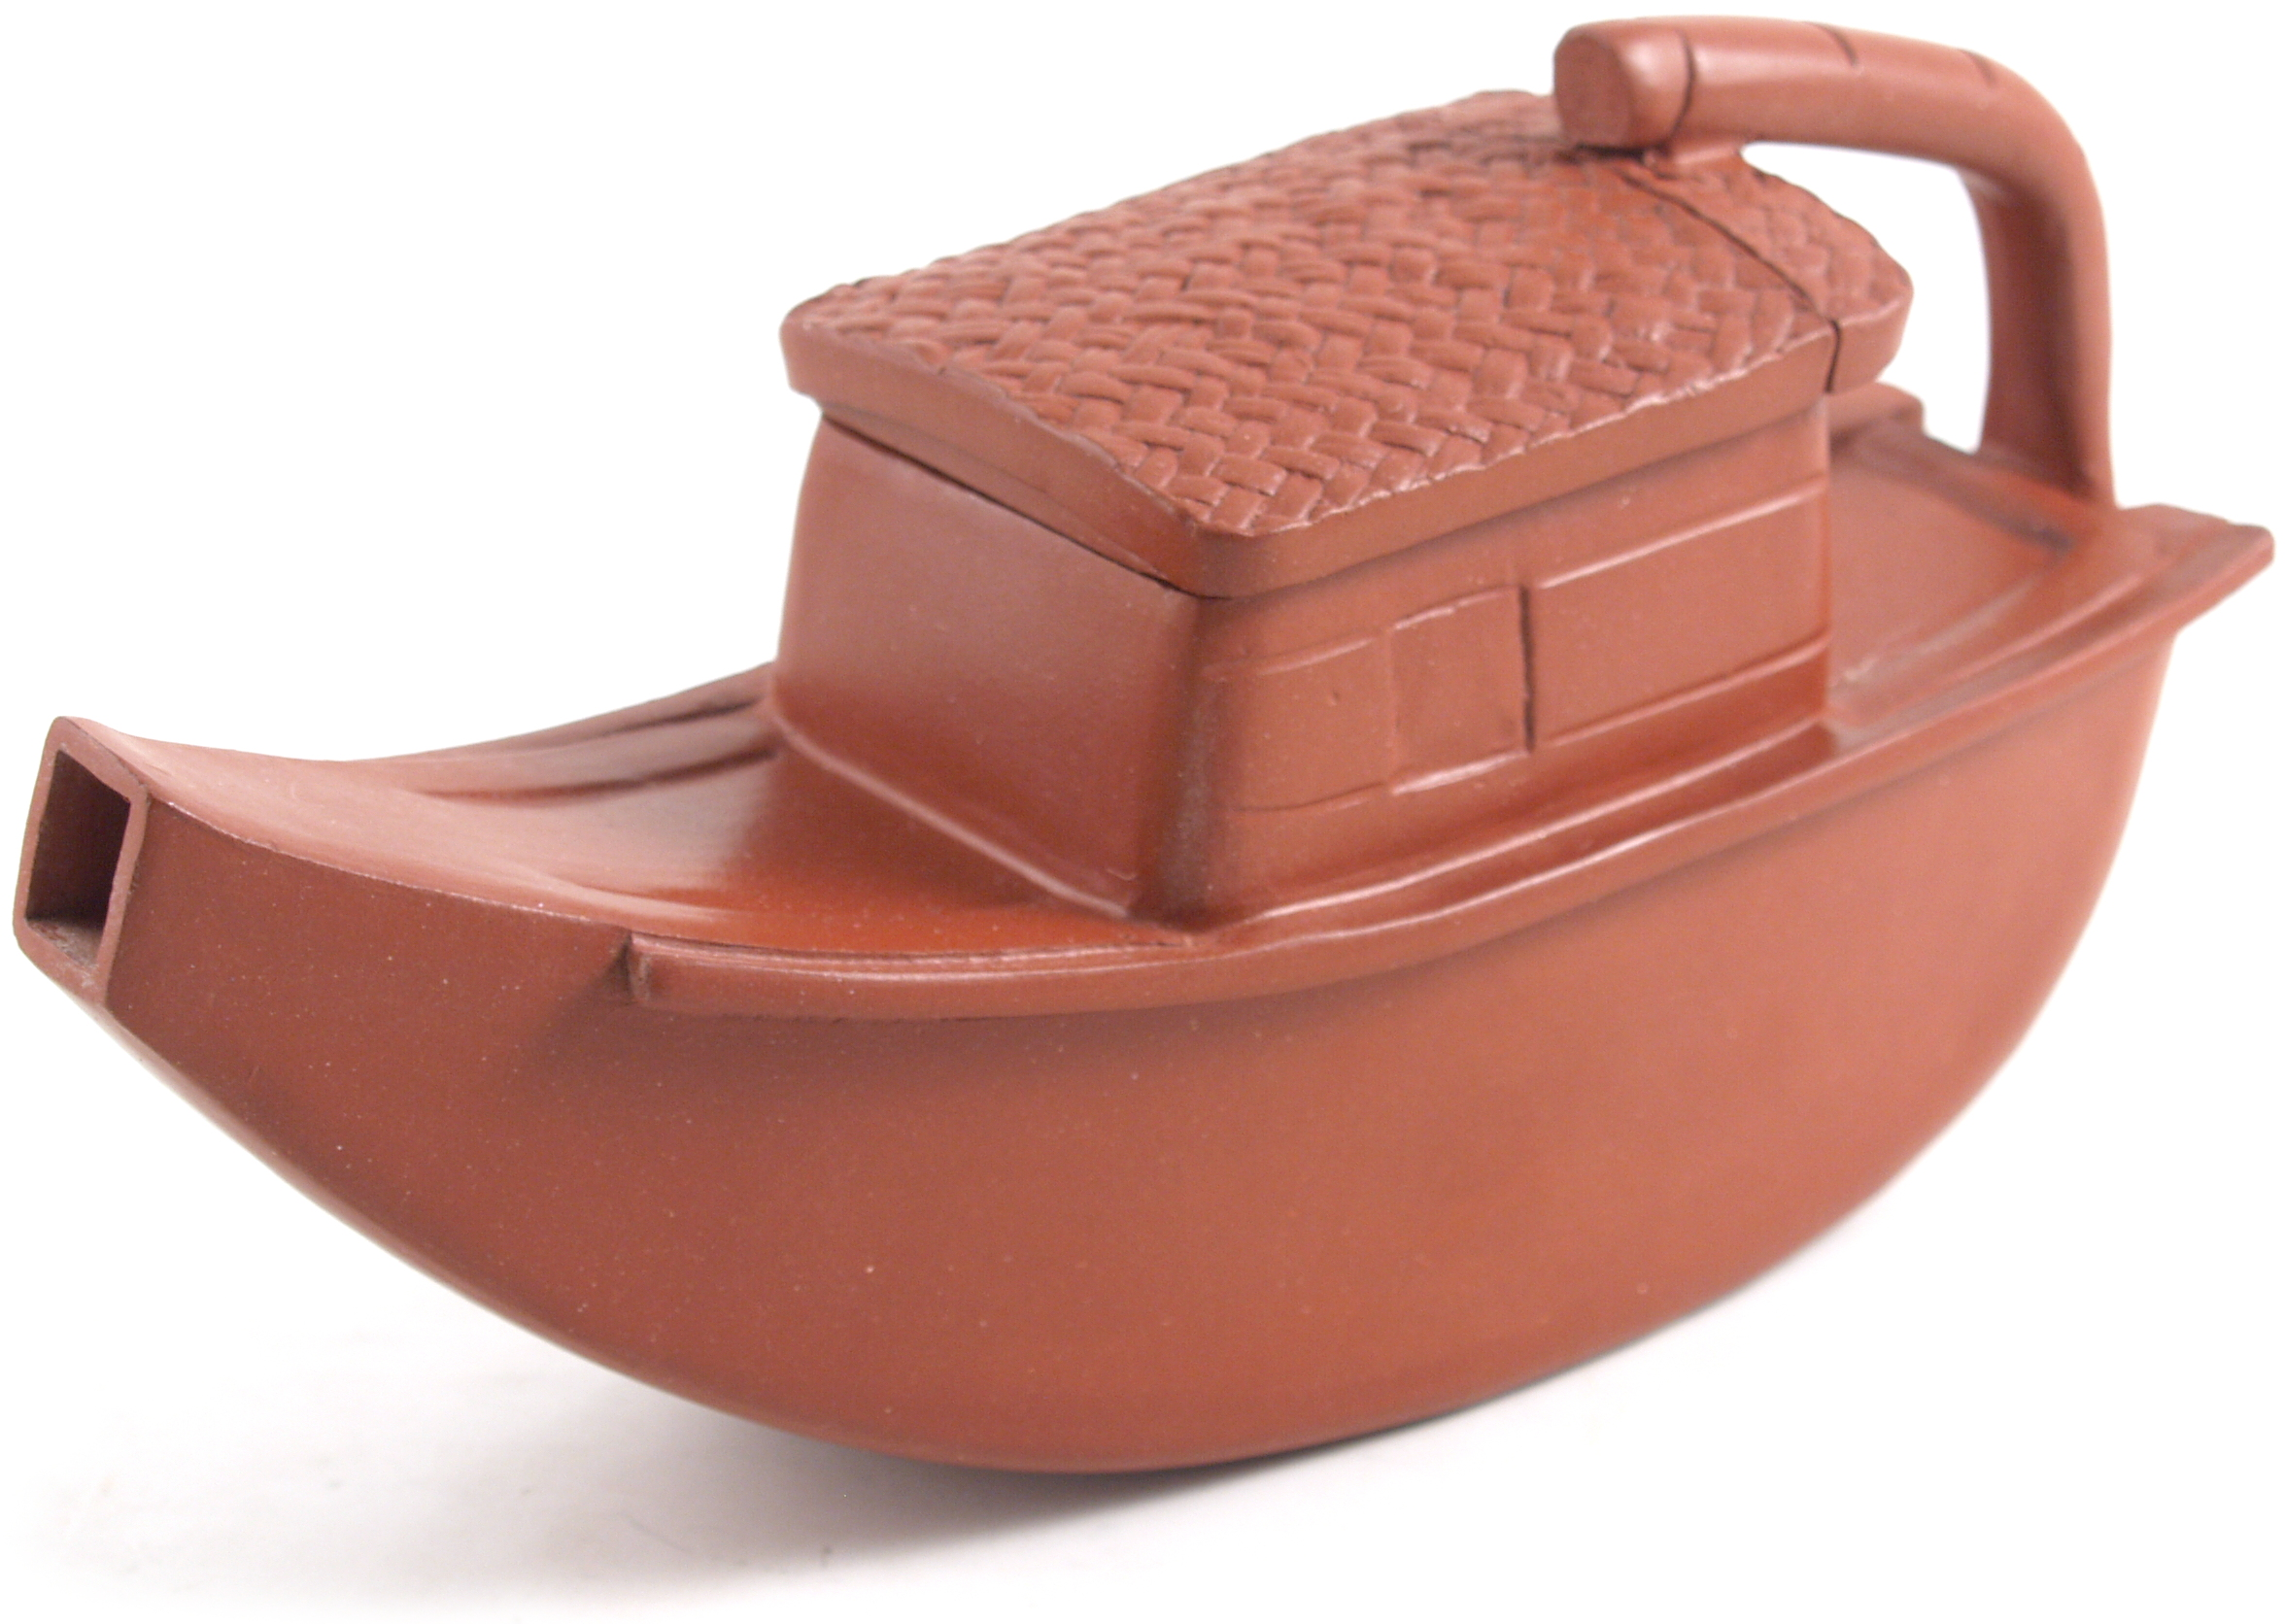 Yixling Clay Boat Teapot for One 7 Ounce